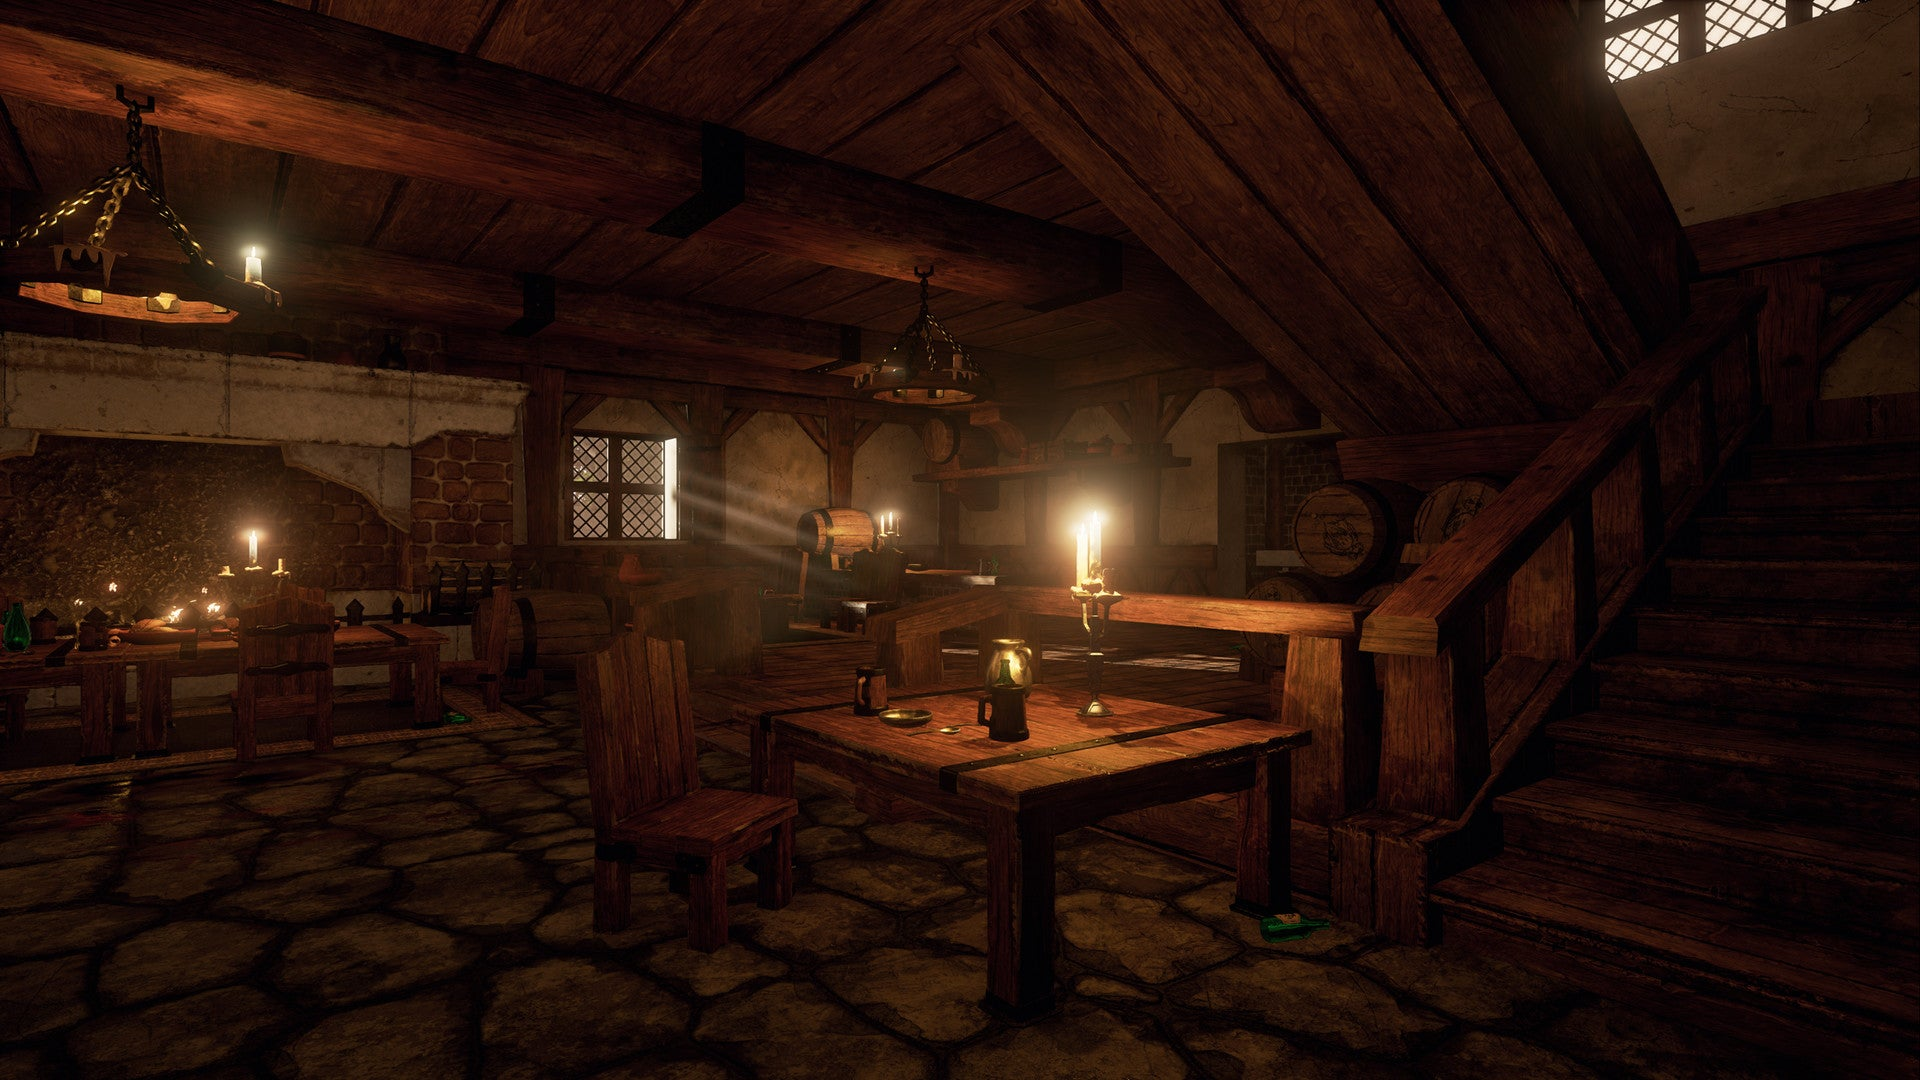 WoW's Goldshire Inn Looks Great in Unreal Engine 4, Despite the Murder